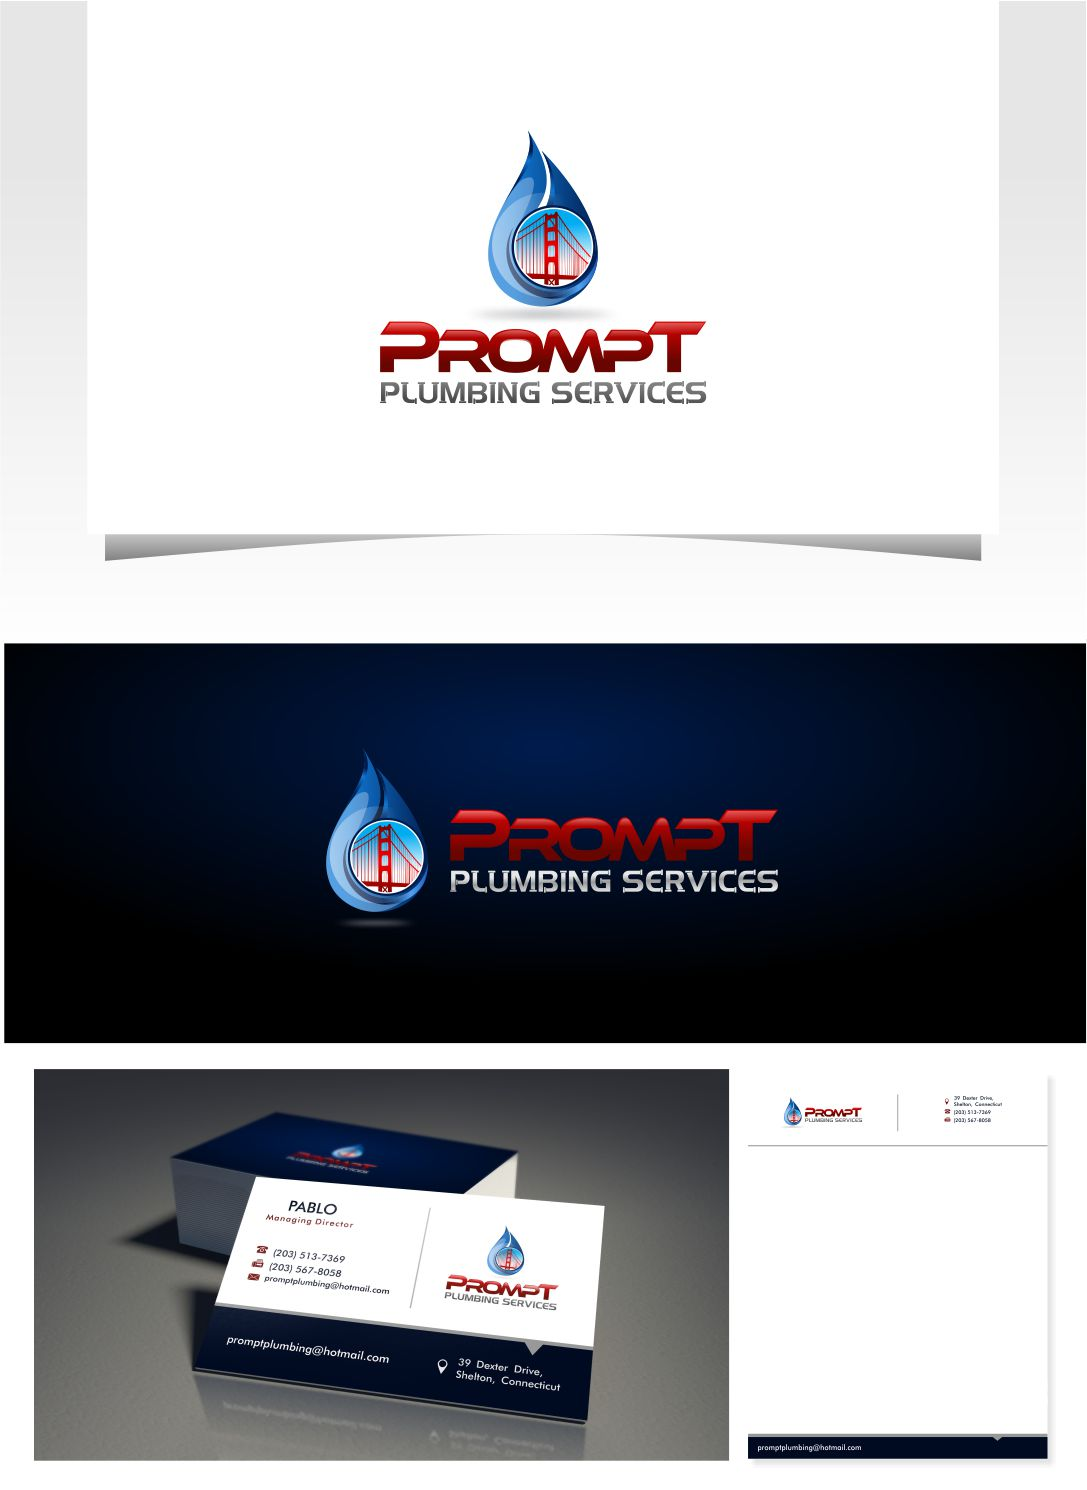 Logo Design by Raymond Garcia - Entry No. 49 in the Logo Design Contest Artistic Logo Design for Prompt Plumbing Services.